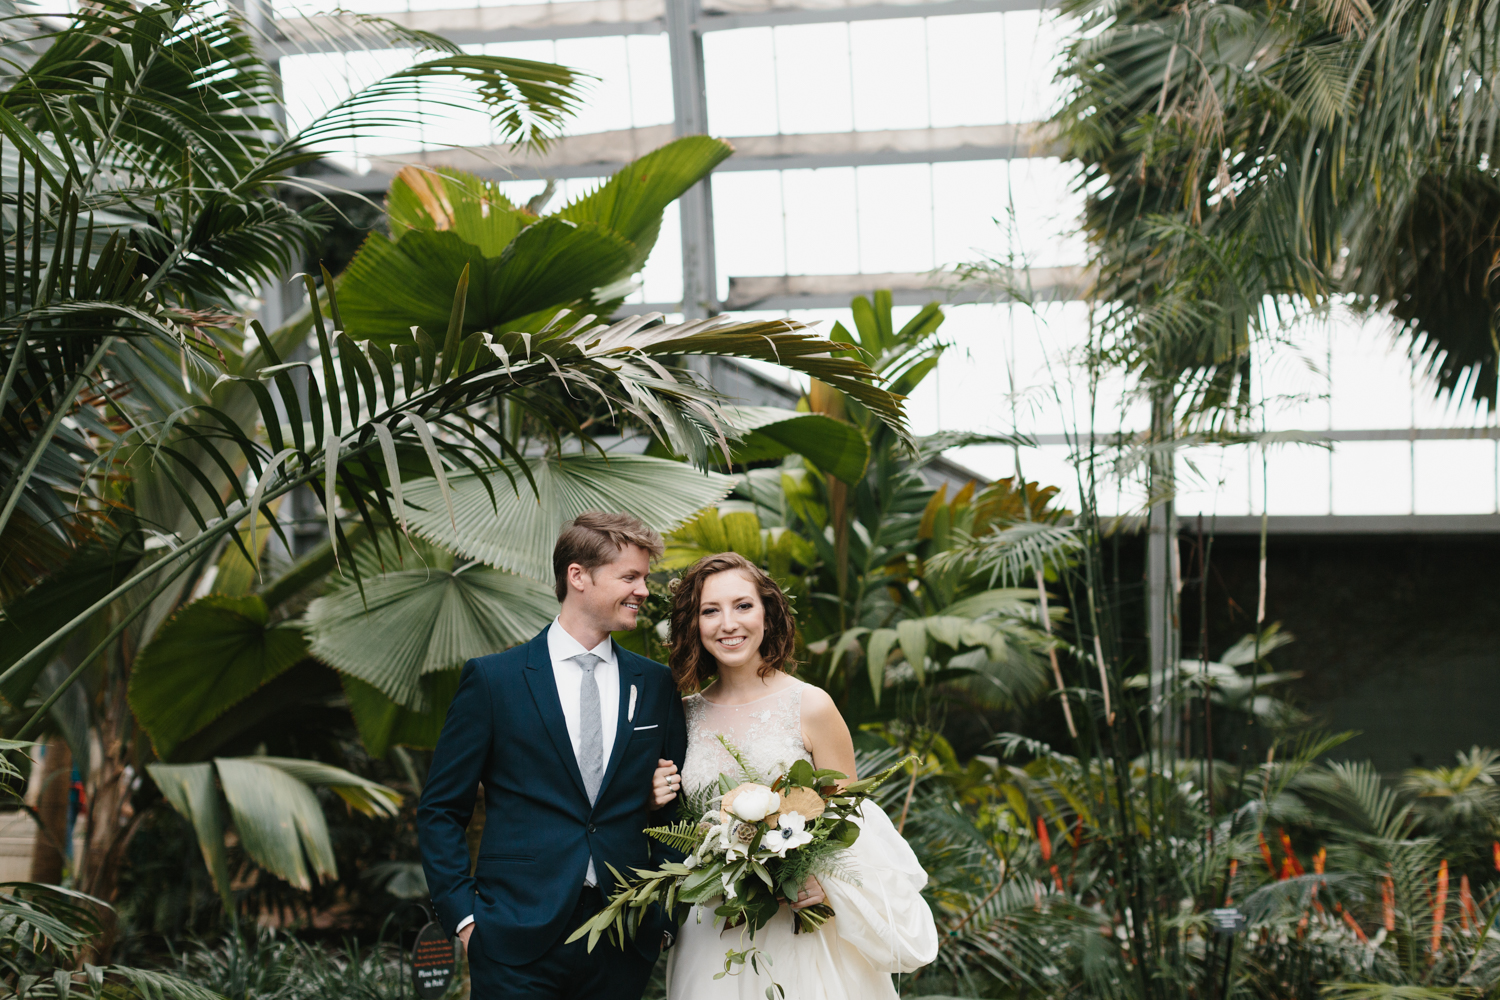 Chicago Garfield Park Conservatory Wedding by Northern Michigan Photographer Mae Stier-037.jpg